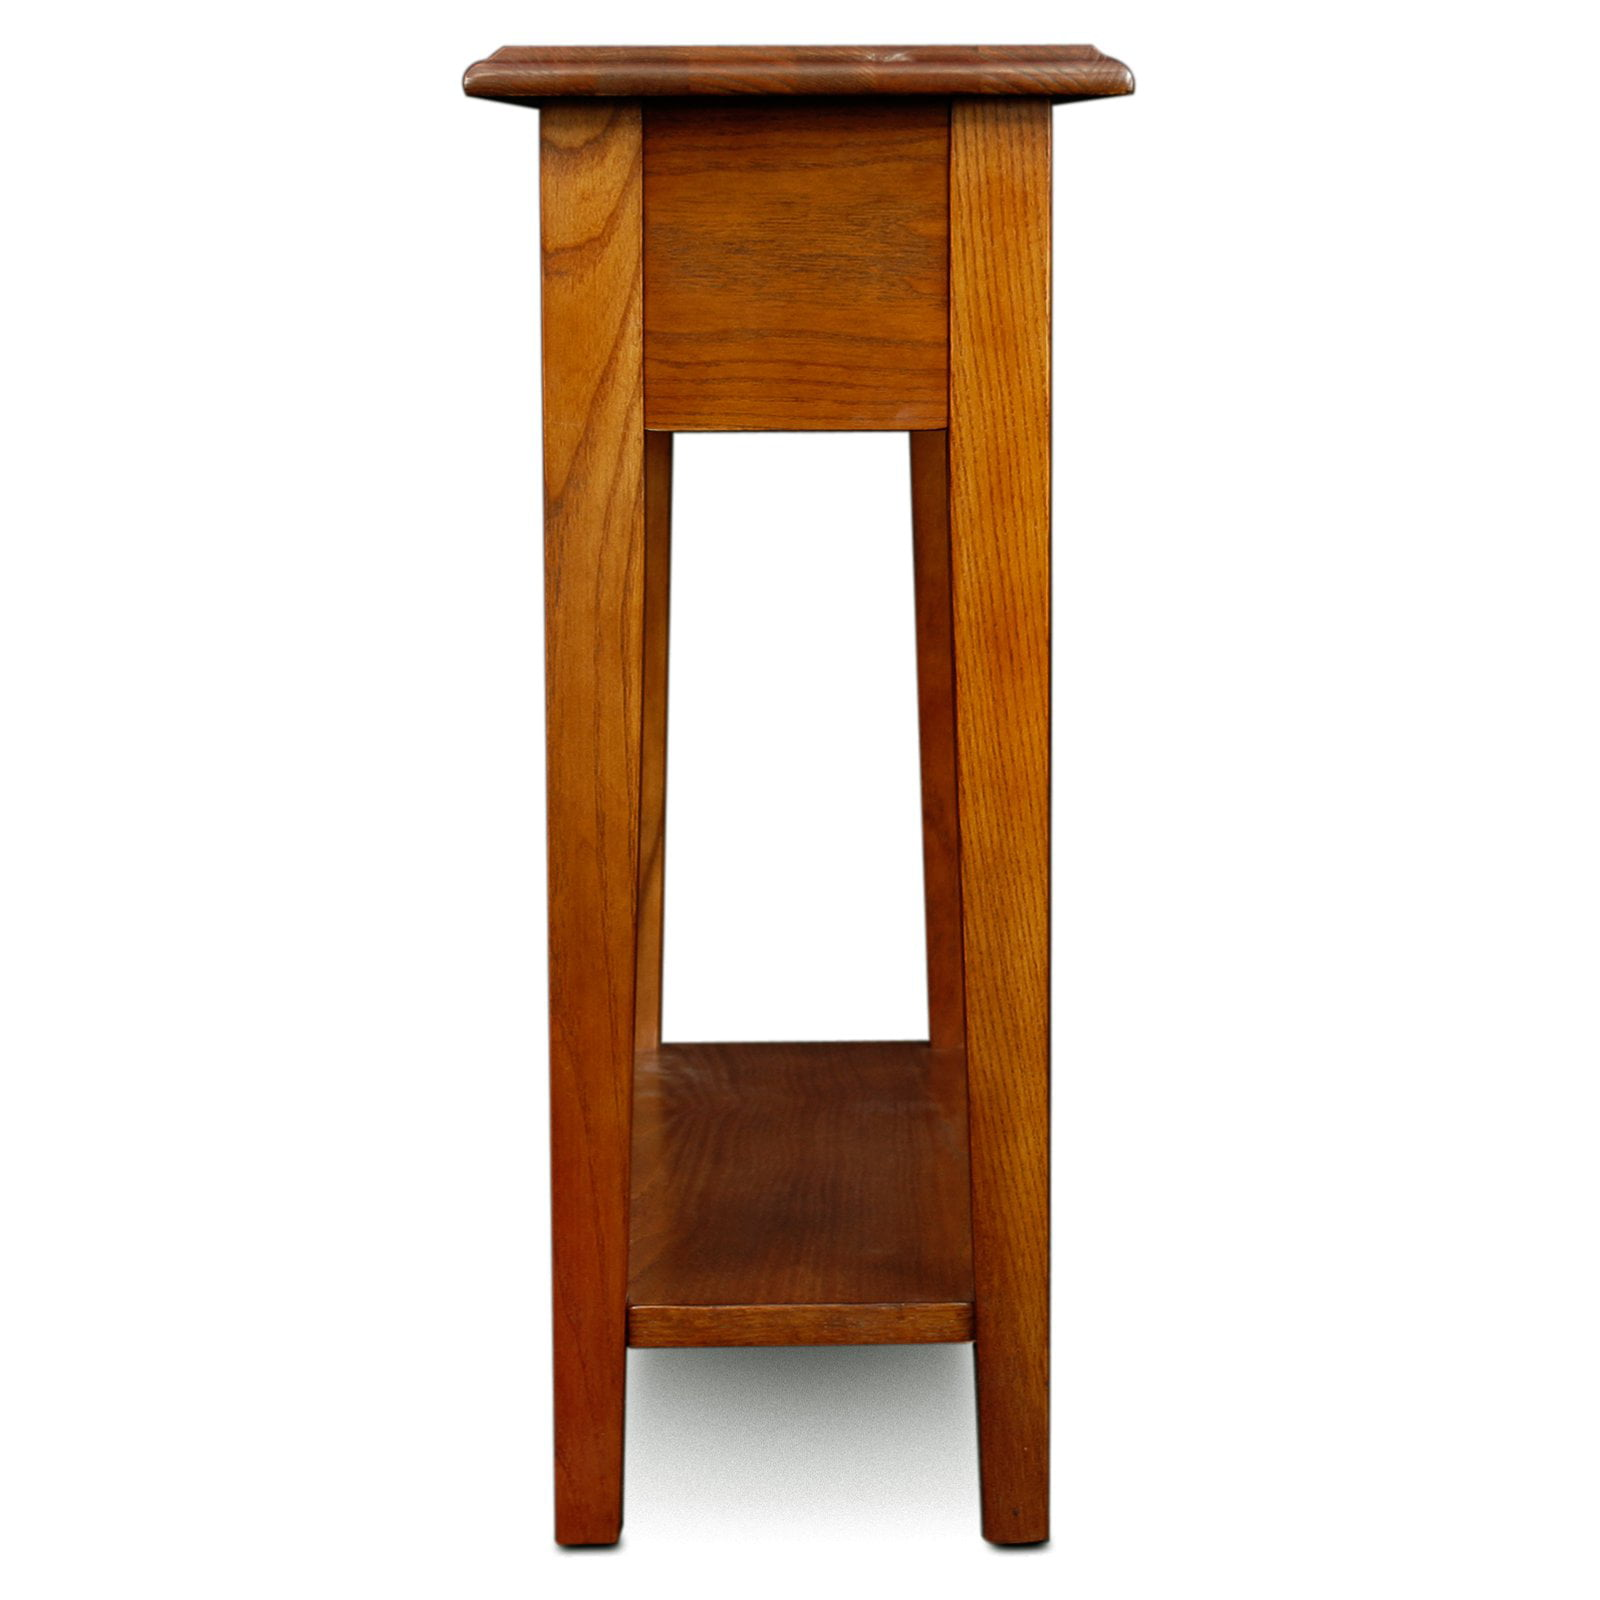 Ordinaire Hardwood 10 Inch Chairside End Table In Medium Oak   Walmart.com